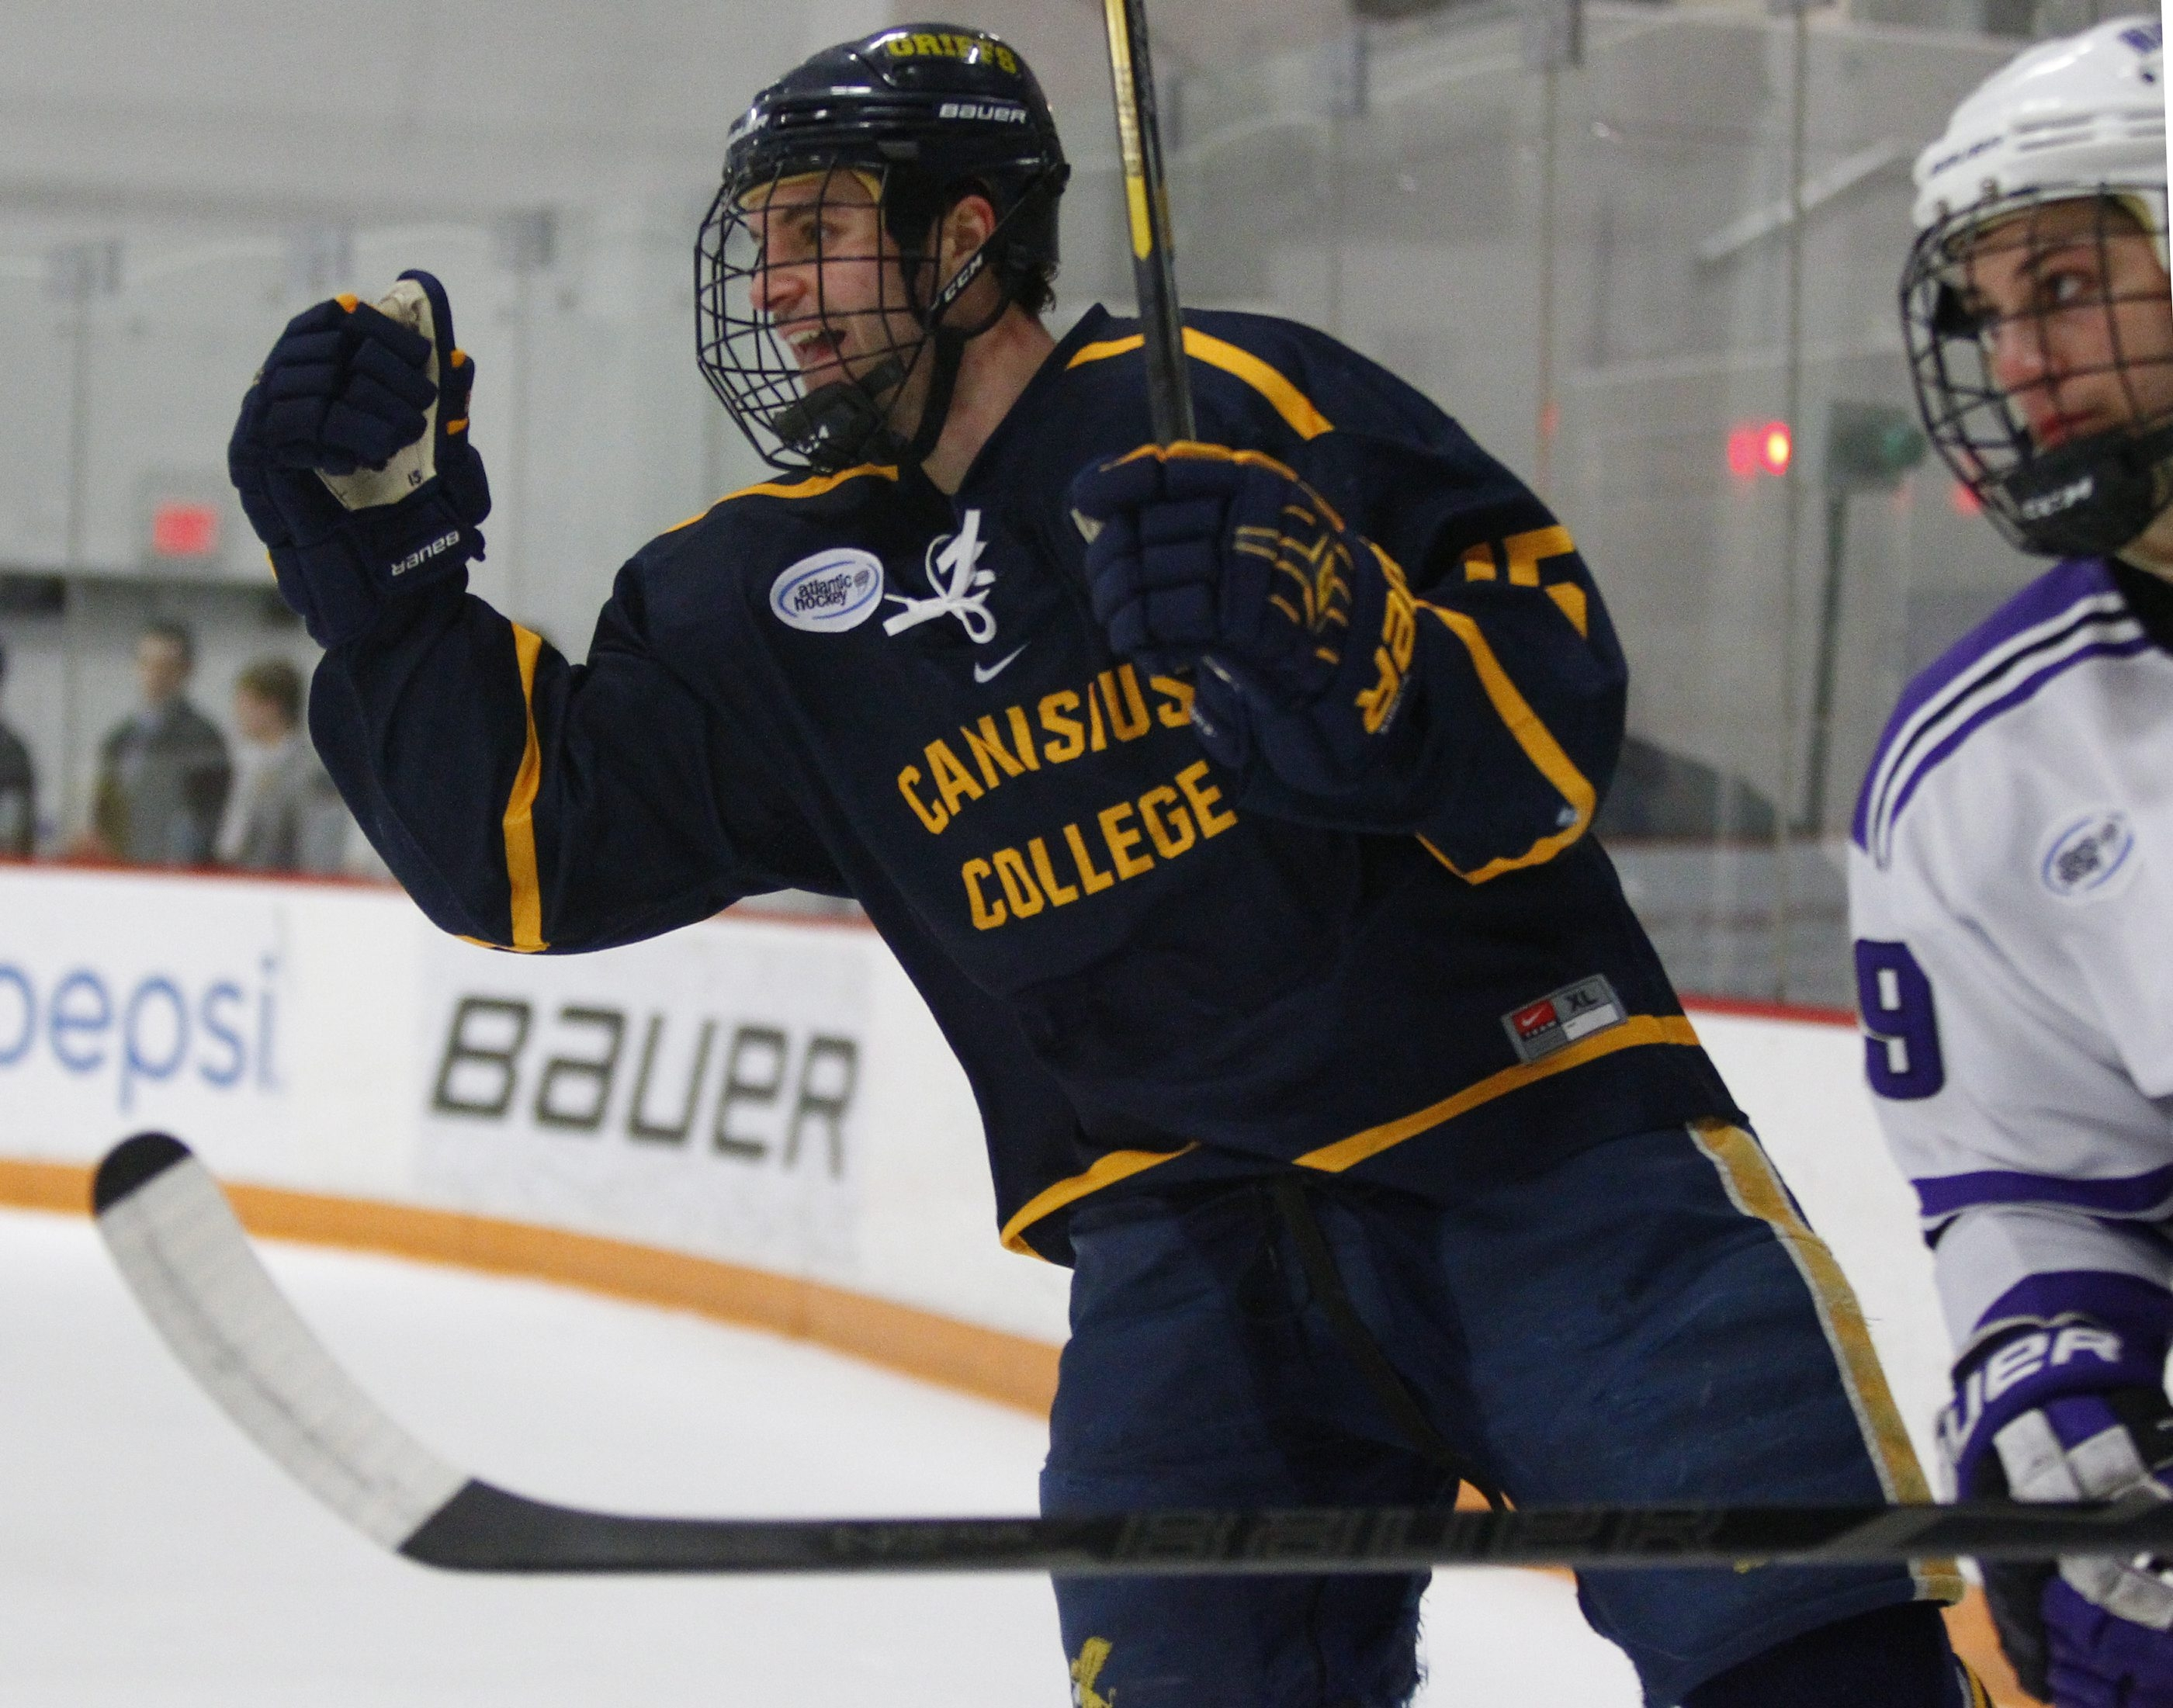 Kyle Gibbons (15) of Canisius celebrates a first-period goal against Niagara during their game at Dwyer Arena Thursday.